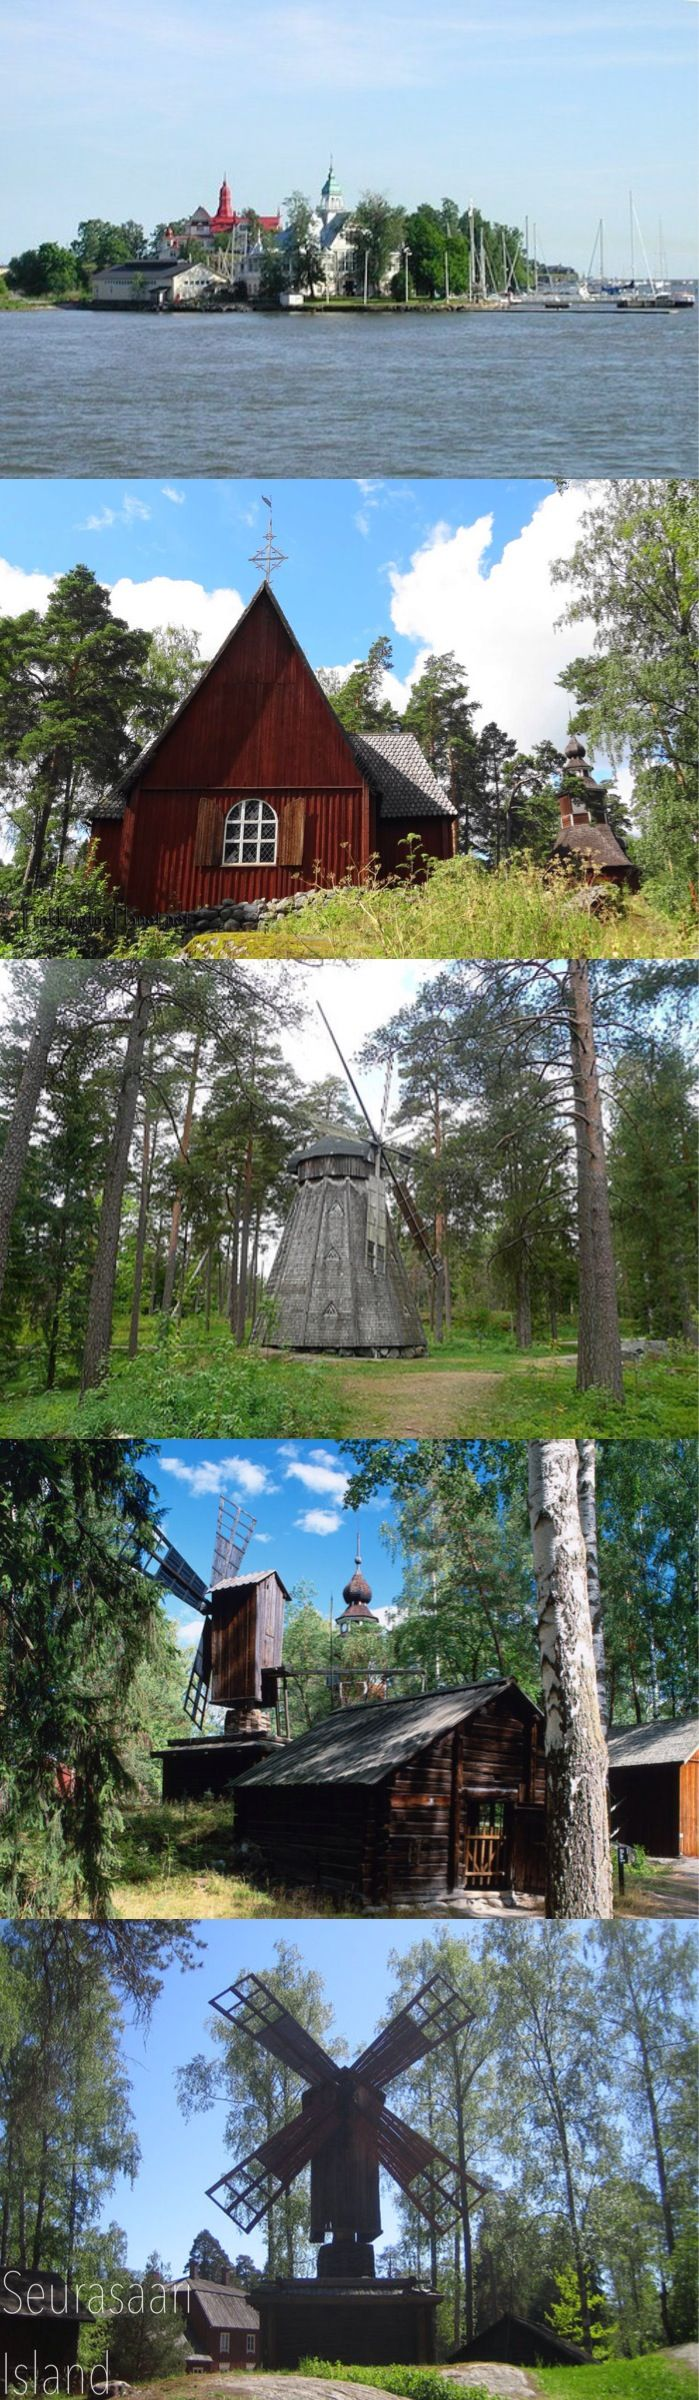 Helsinki, Finland- Seurasaari Island. If you only have 1 day in Helsinki you should head here to get a true feel of Finnish history and nature in just a couple of hours.